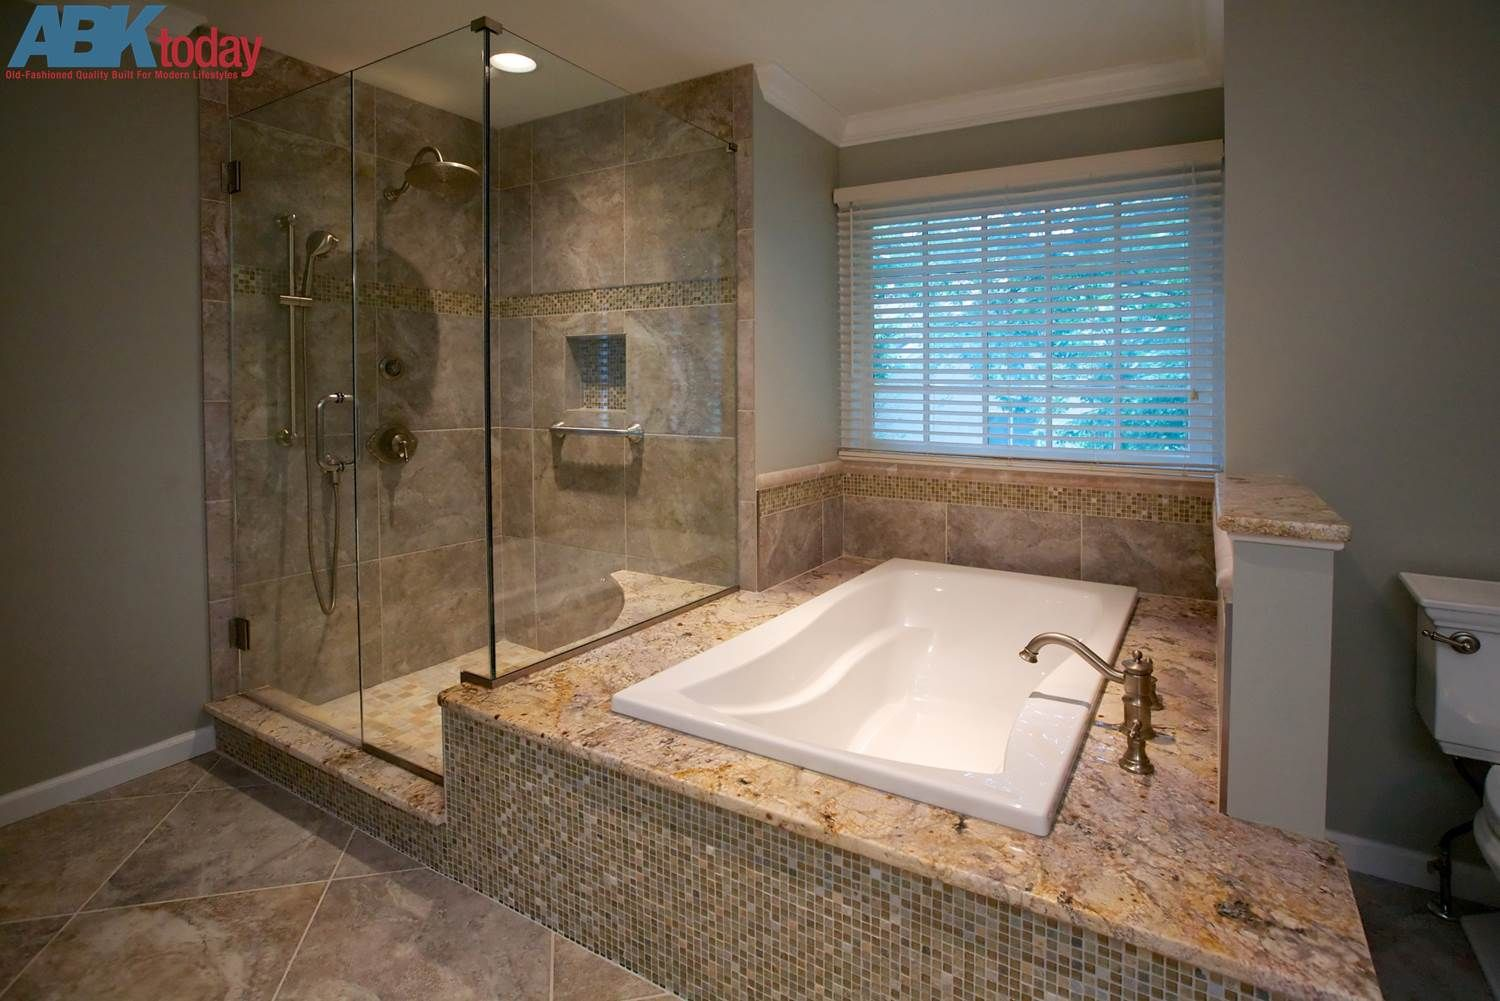 l-shaped shower and toilet - Google Search | Home decor | Pinterest ...